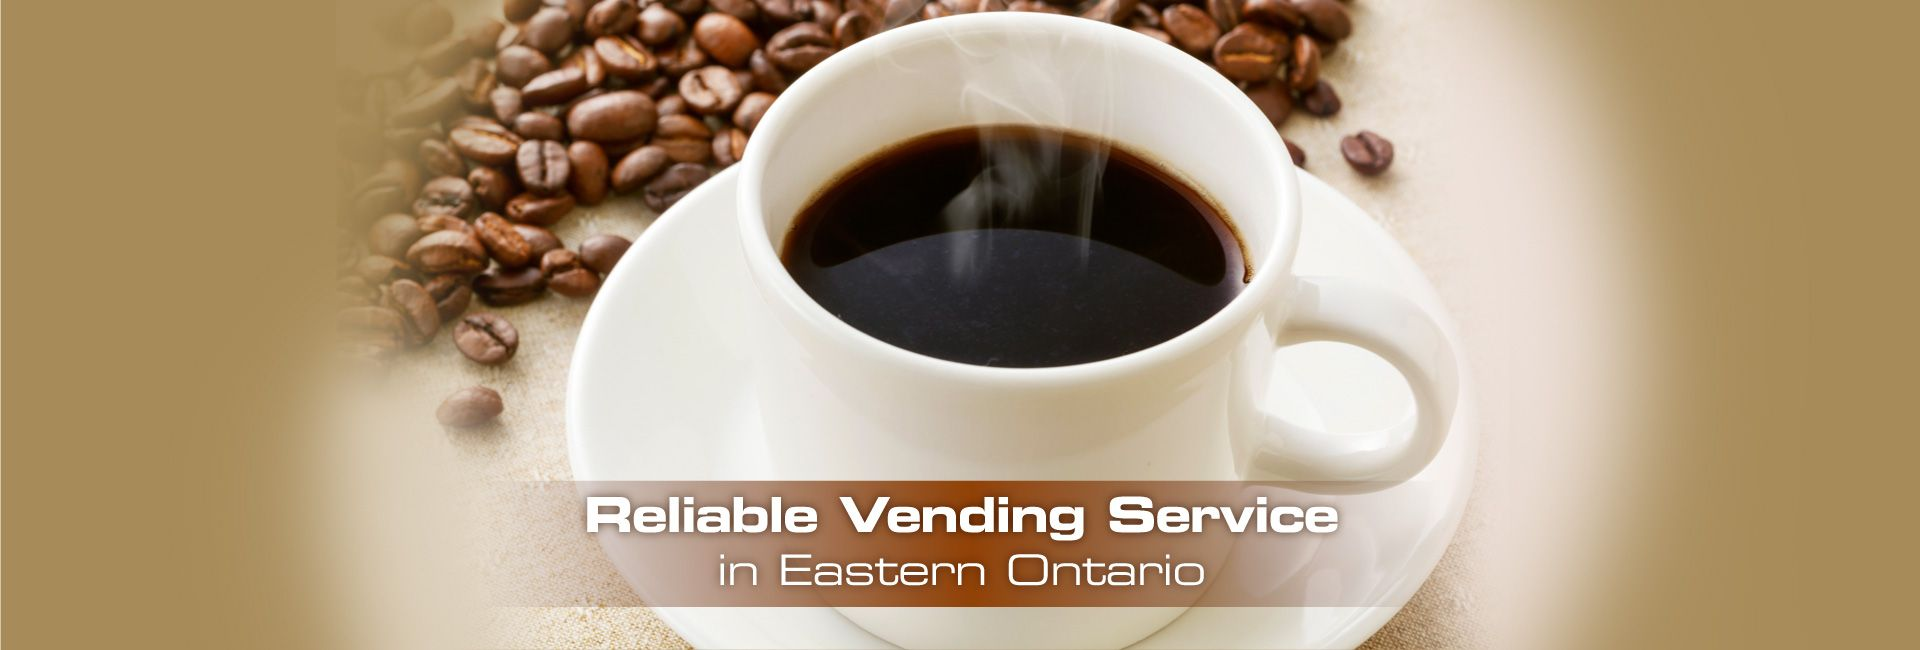 Reliable Vending Service in Eastern Ontario | Coffee cup and coffee beans